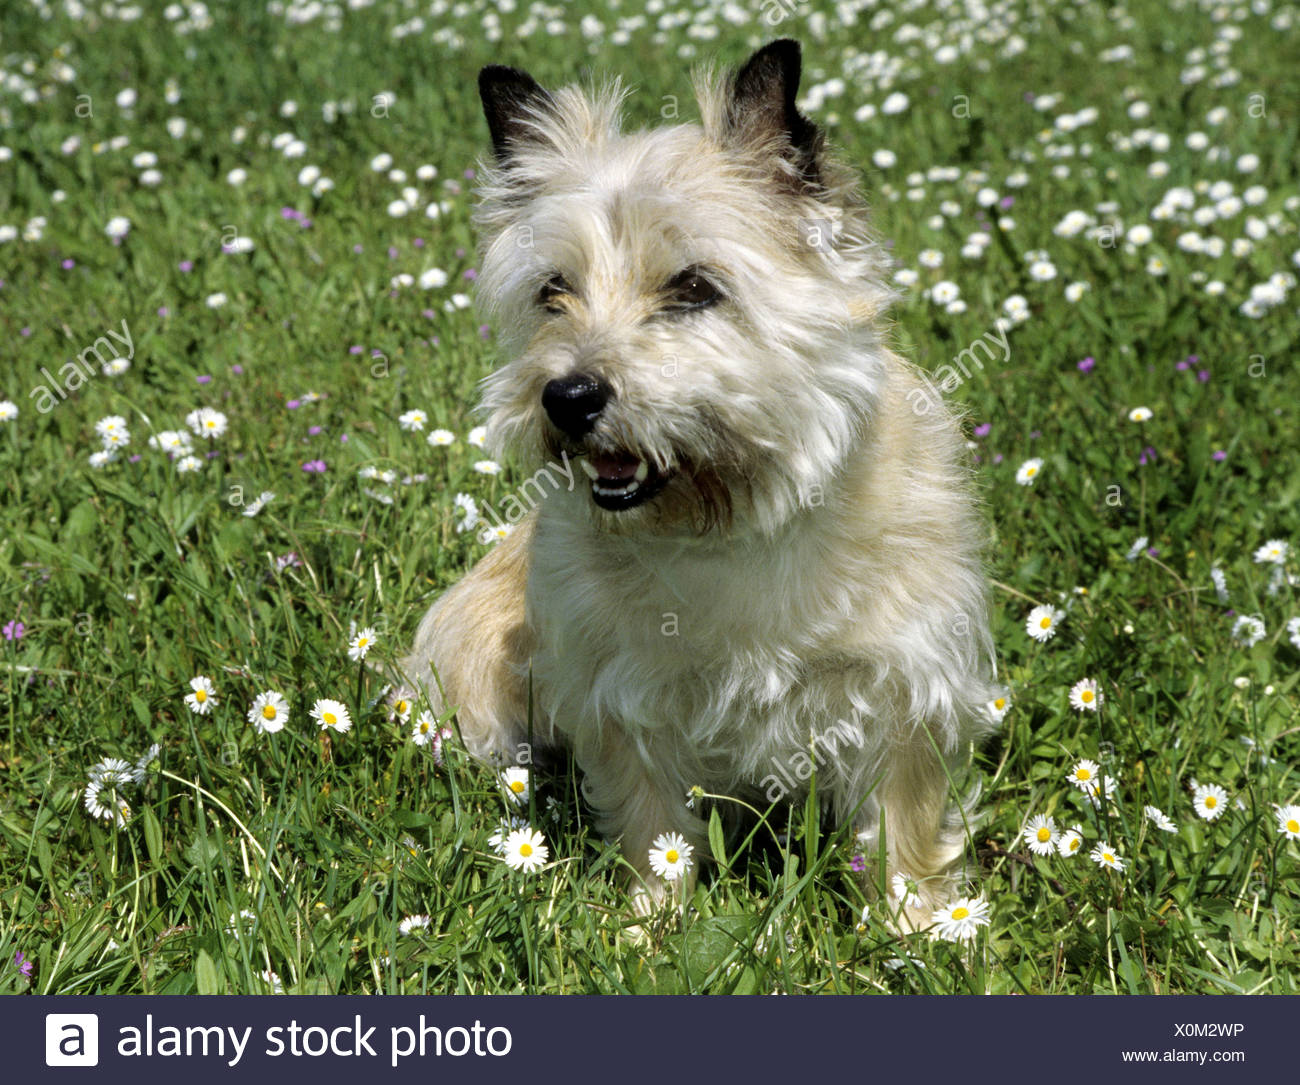 Border Terrier snarling in a field - Stock Image